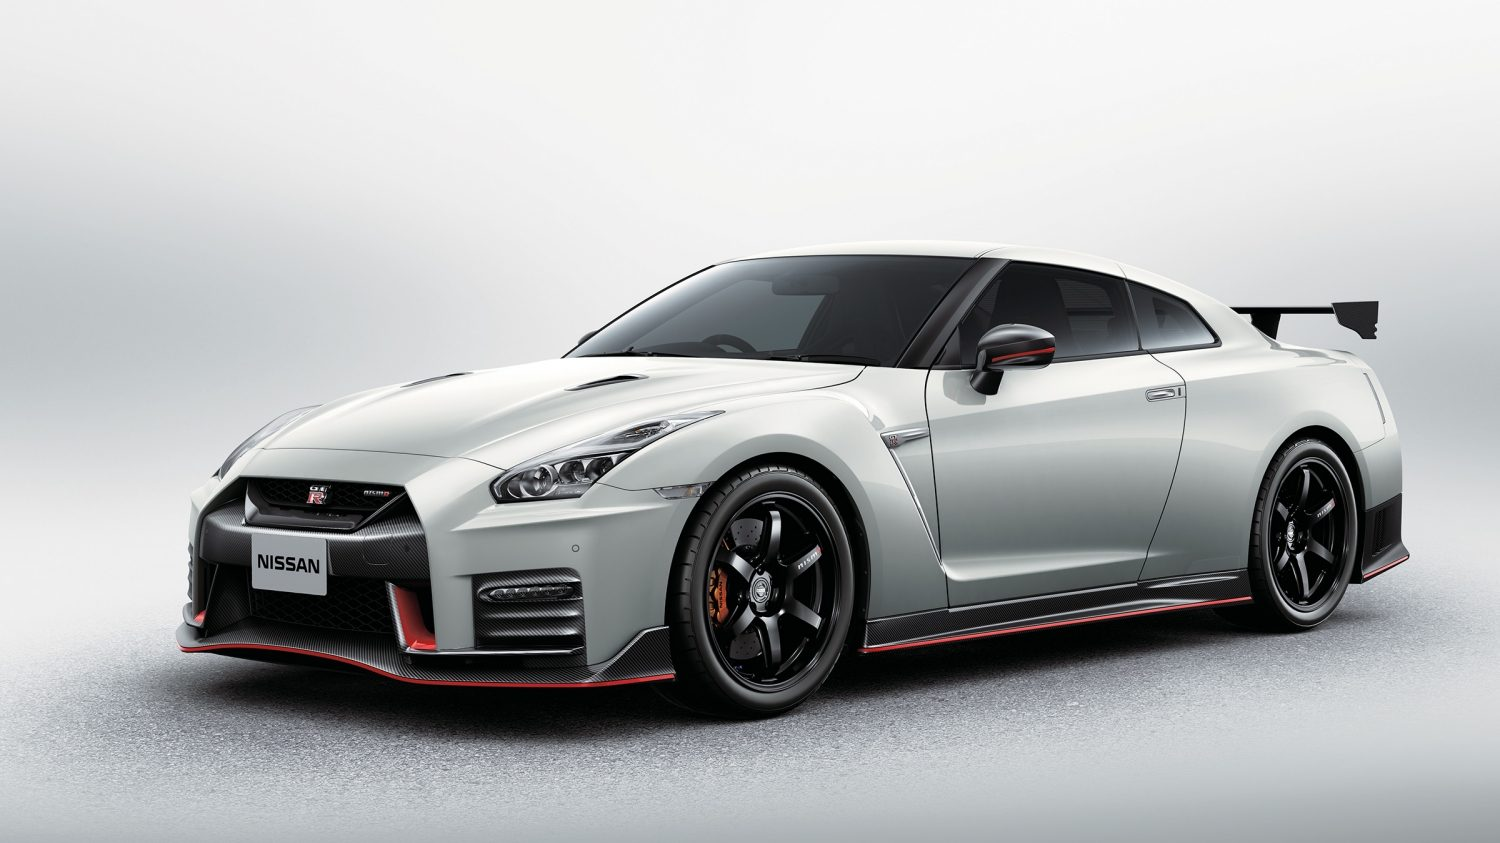 Gtr Nismo 2019 >> Nissan GT-R - Super Sports Car | Nissan Dubai